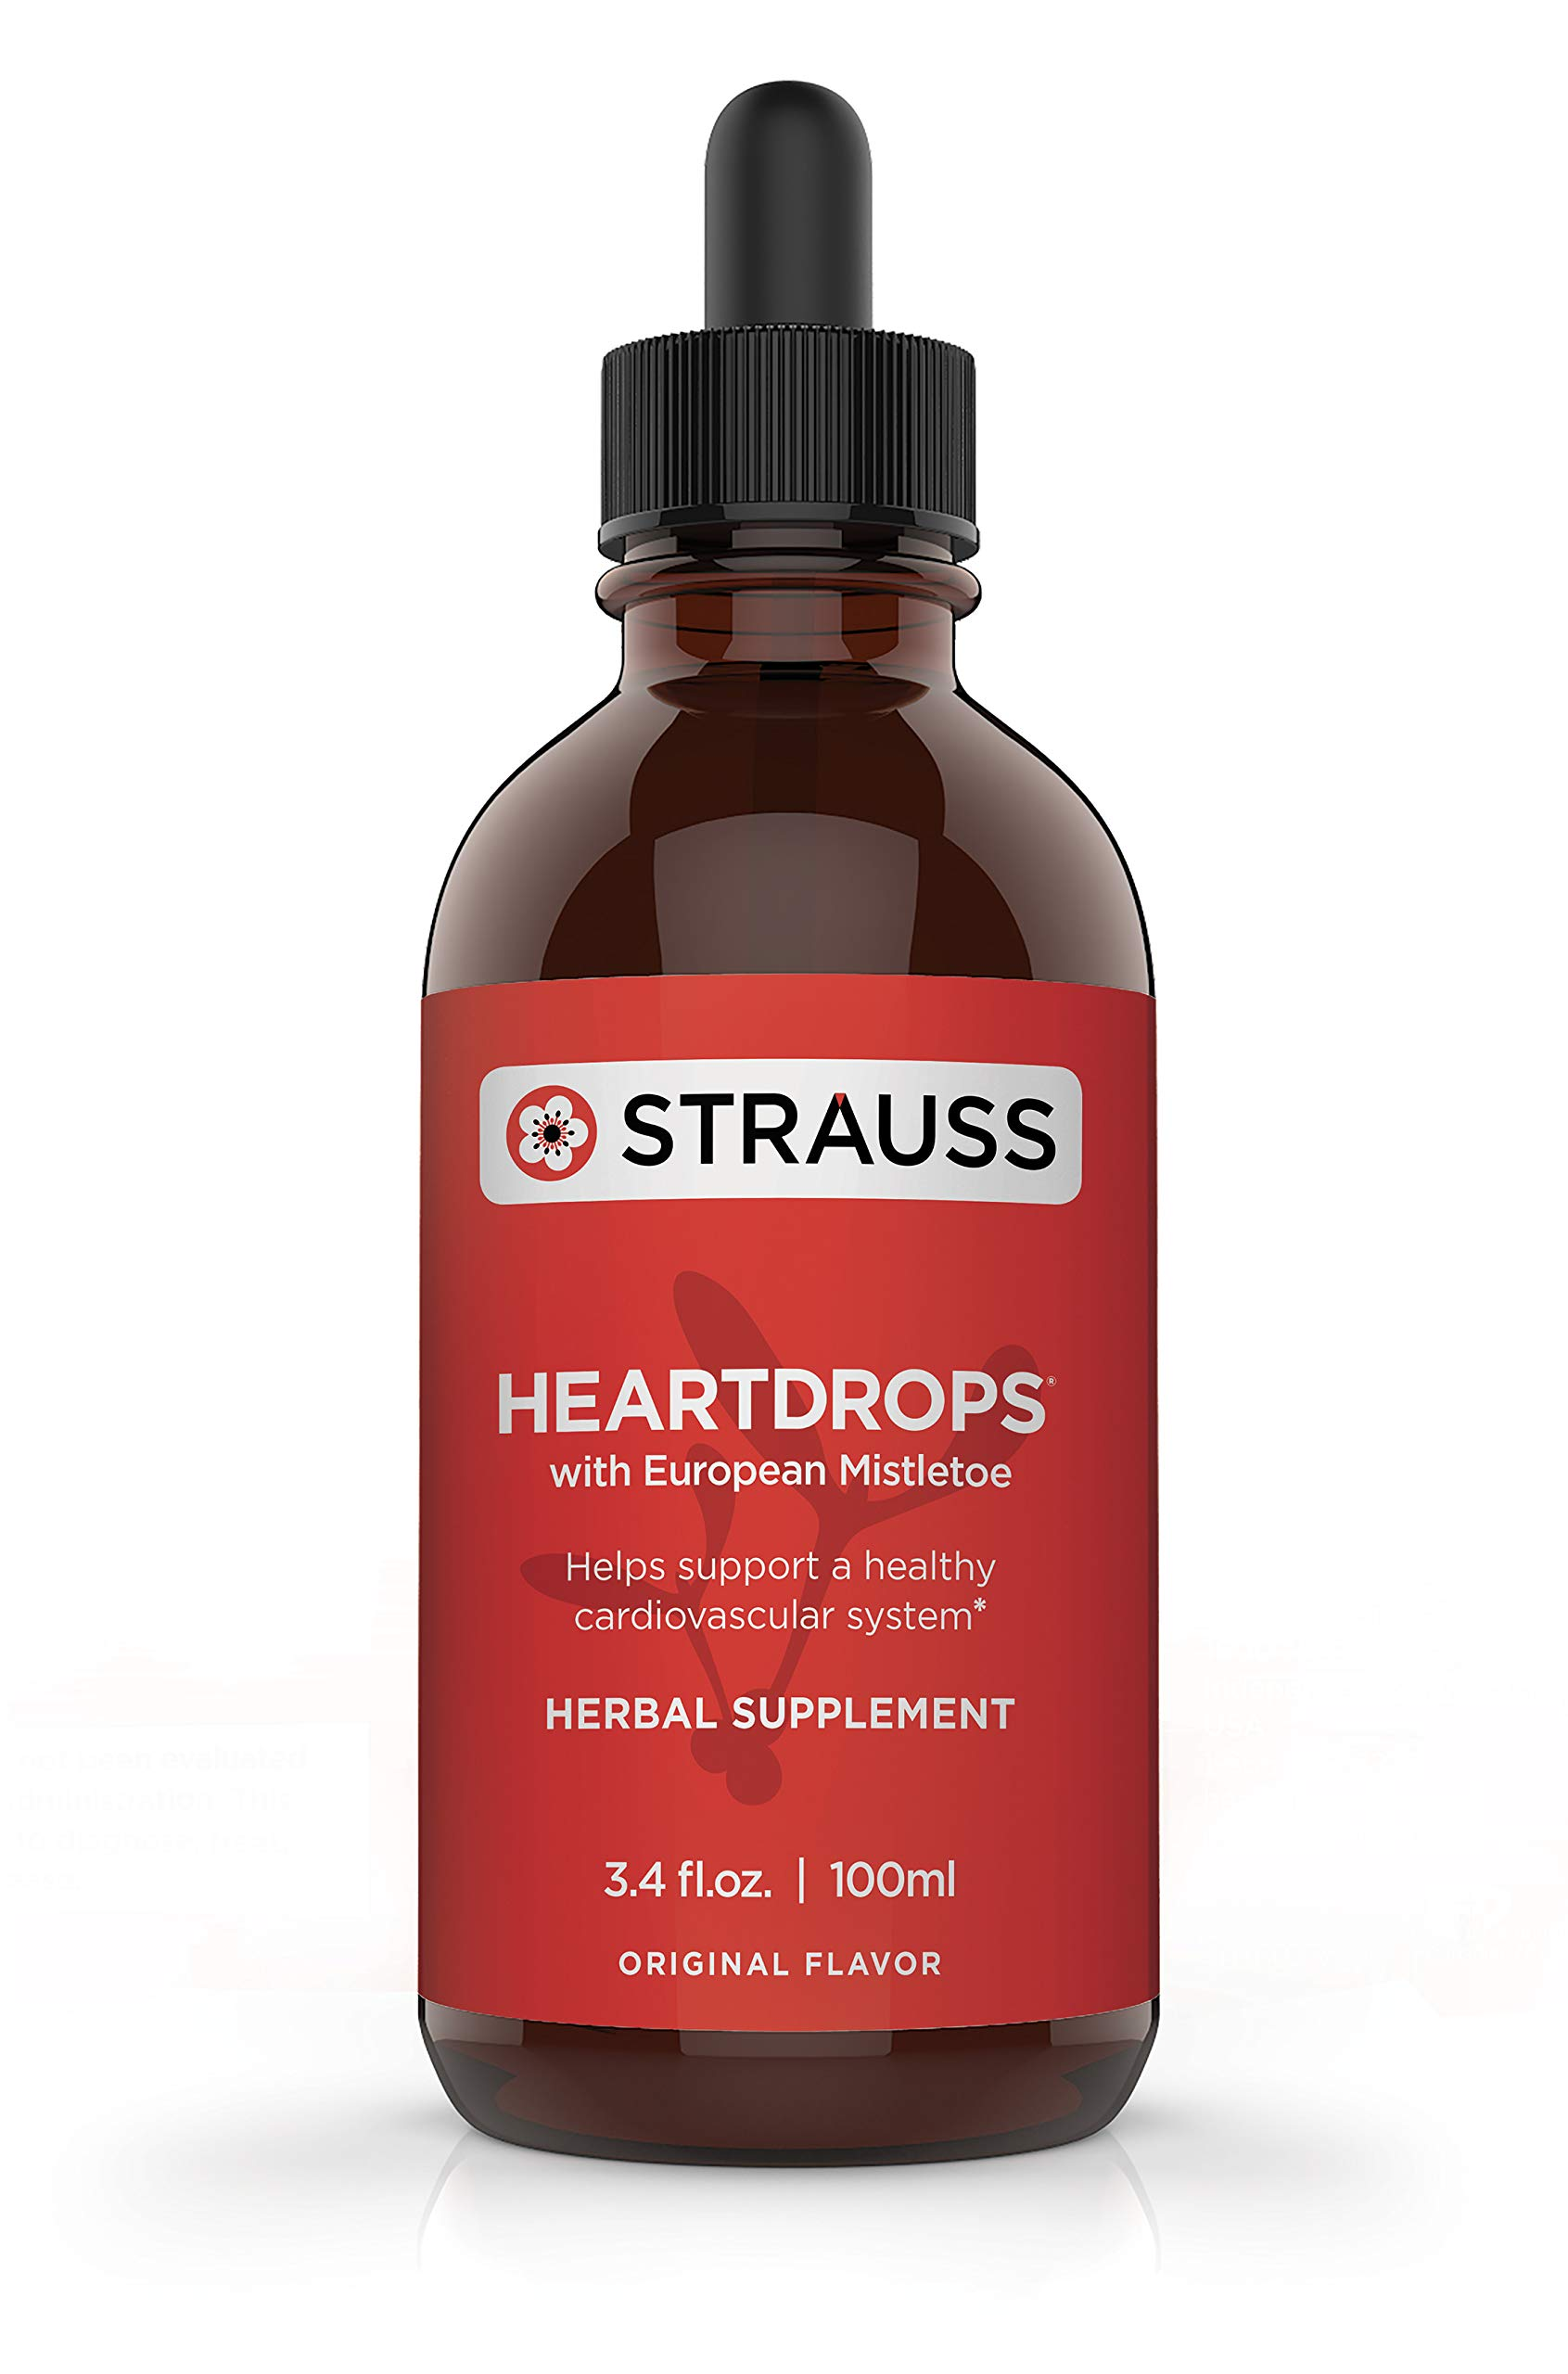 Strauss Heartdrops-Aged Garlic Extract, Herbal Supplement for Heart Health-Heartdrops Herbal Formula | Maintain a Healthy Cardiovascular System-High Quality, Natural Ingredients (3.4 fl oz Original Flavor)